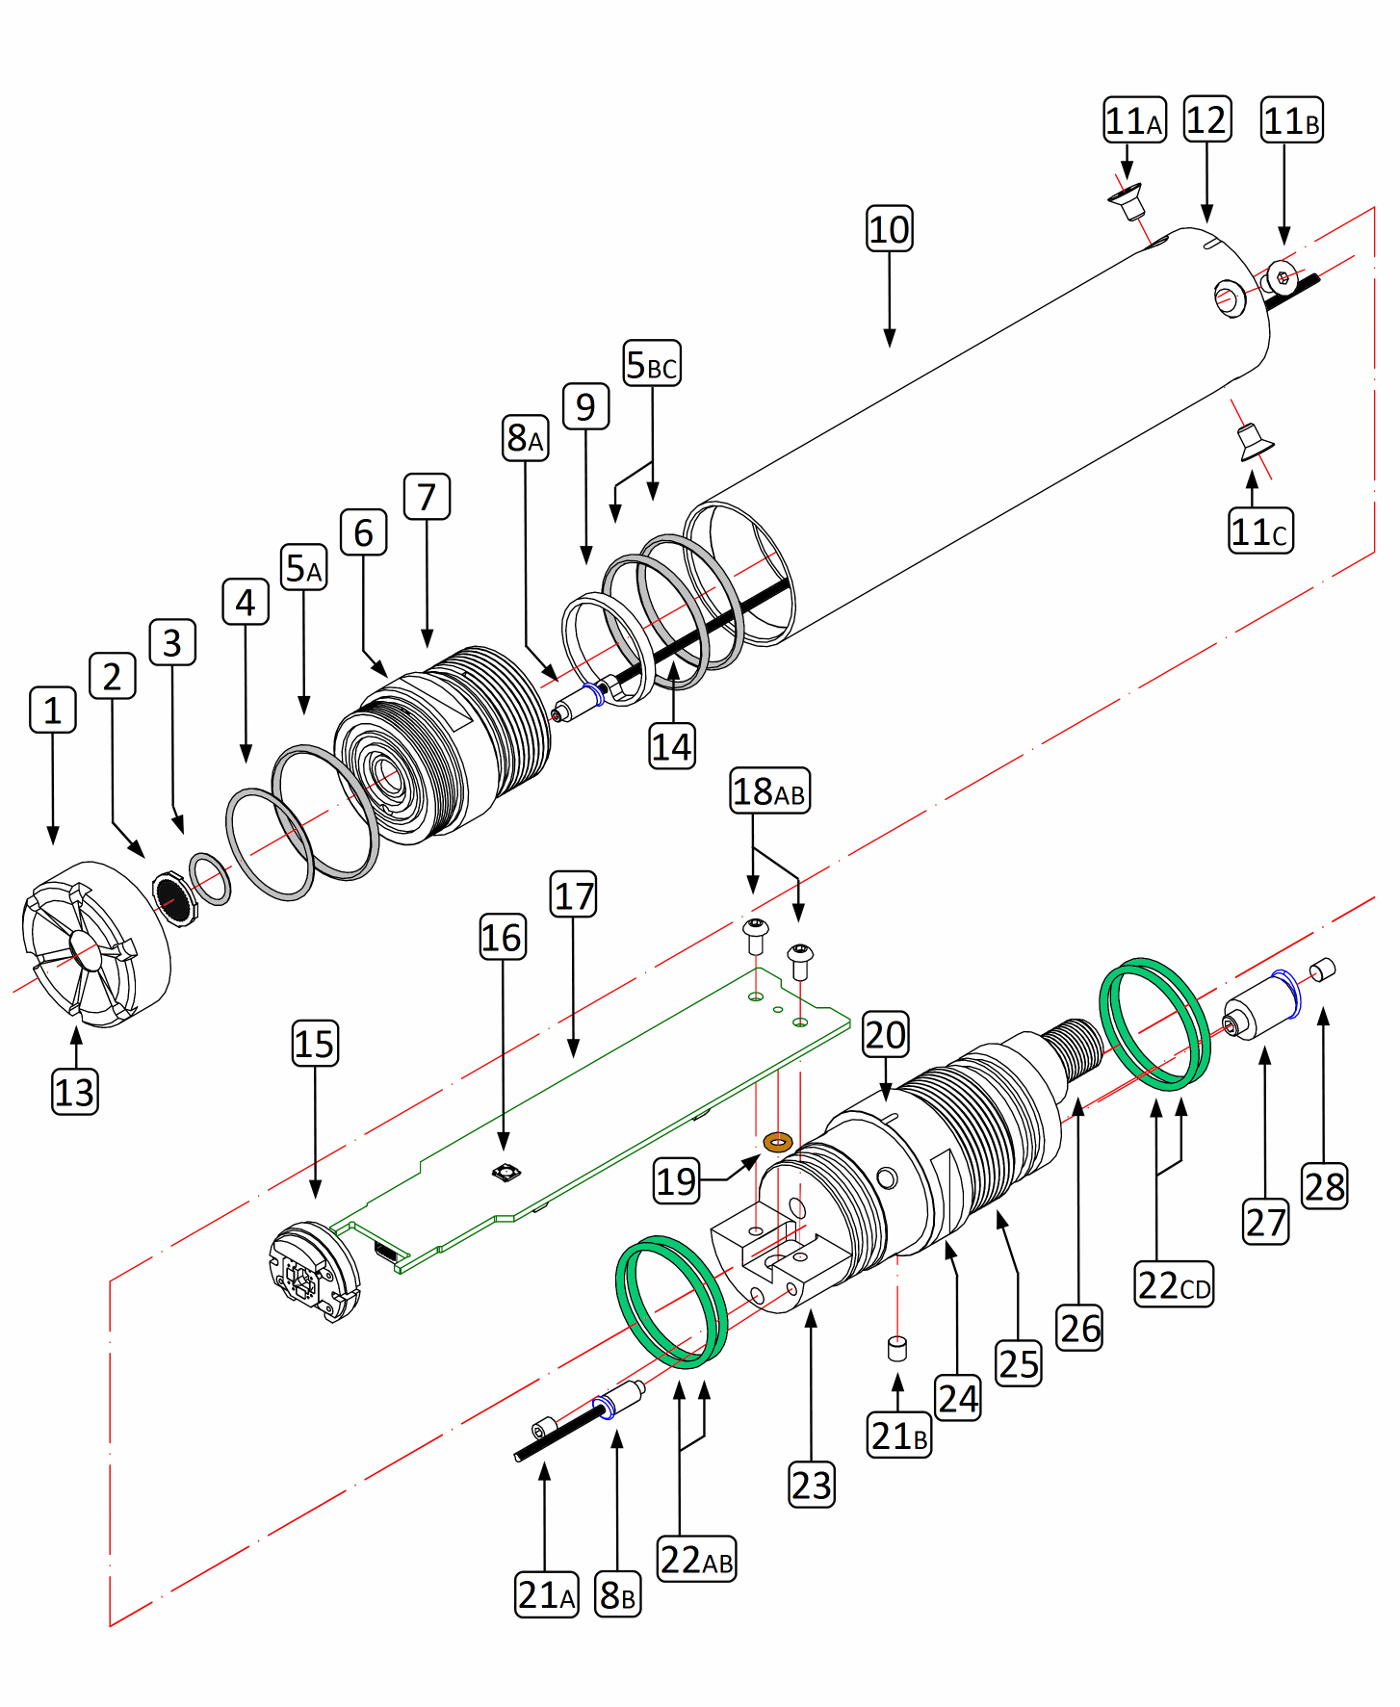 hight resolution of ryobi battery charger wiring diagram guest battery charger